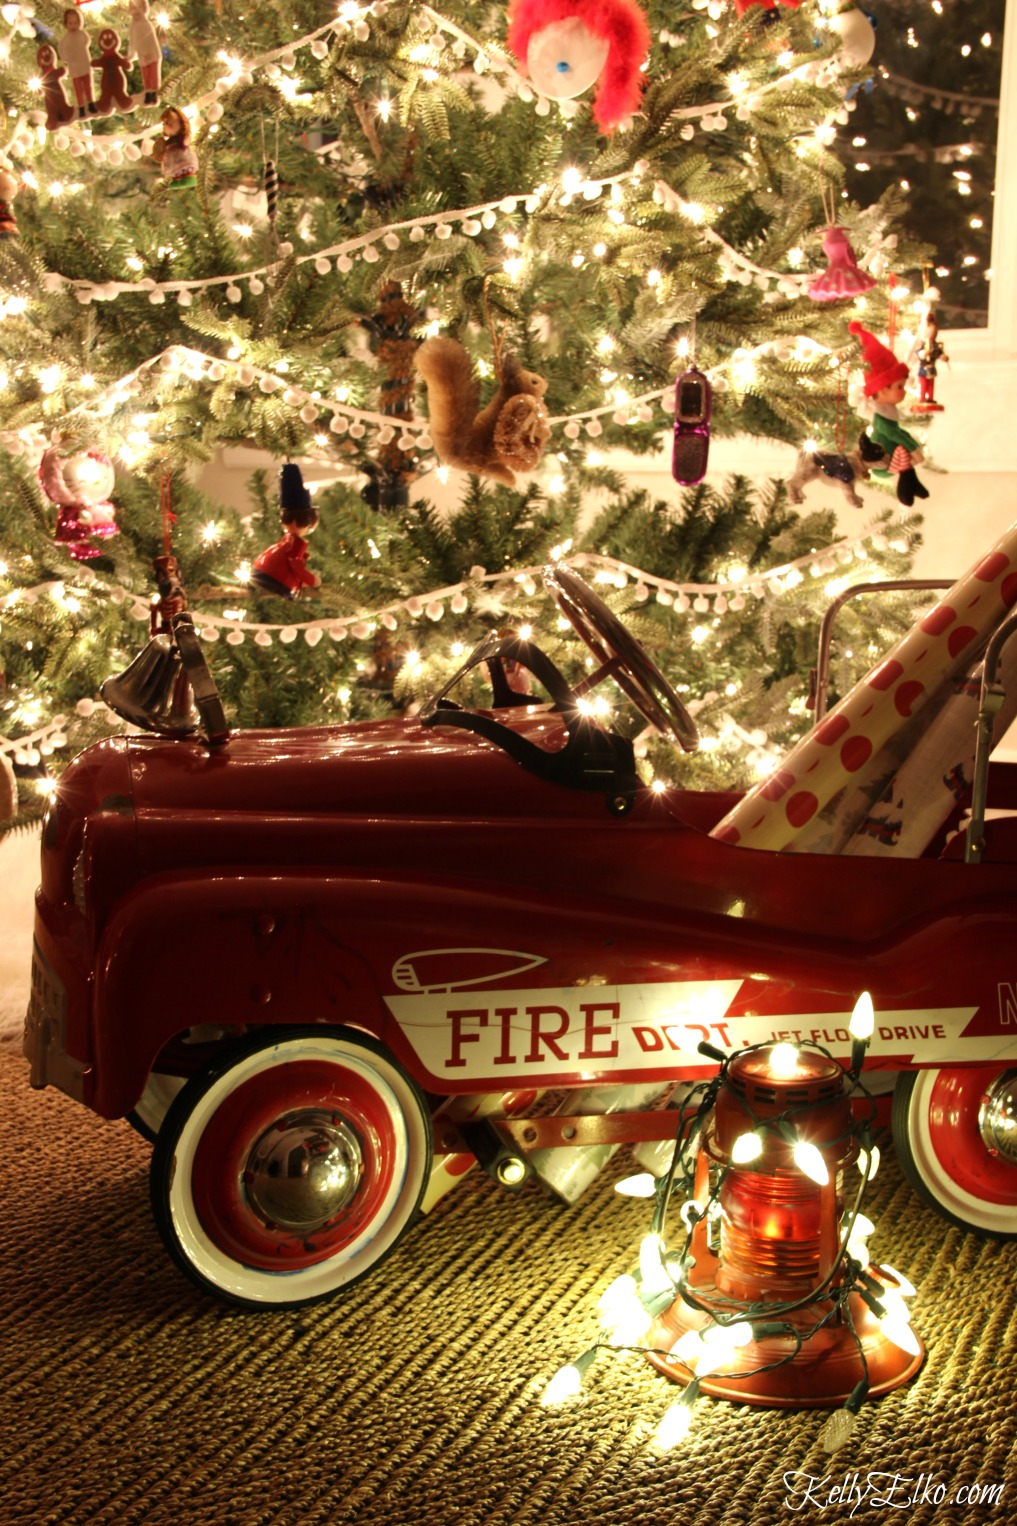 Christmas Nights Tour - see 25 of the best Christmas homes lit up at night! How fun is this cute little red fire truck filled with gift wrap kellyelko.com #christmas #christmasdecorating #christmasdecor #christmaslights